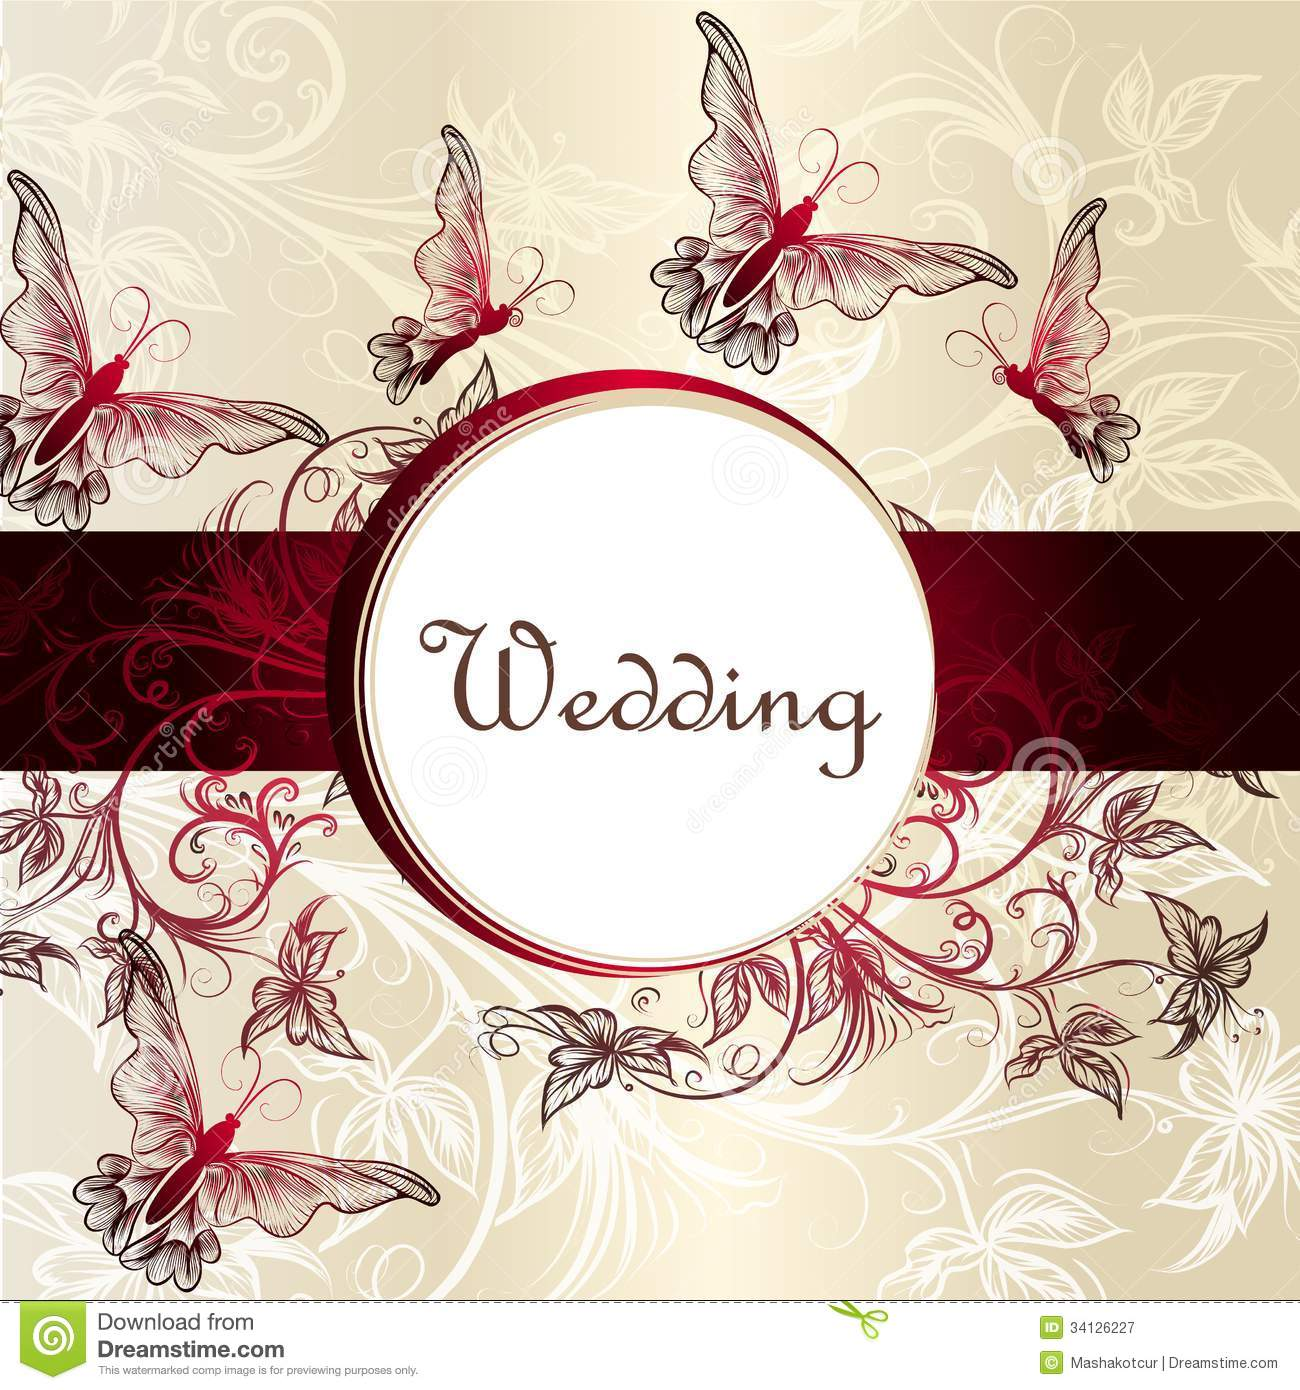 Wedding invitation card for design stock vector illustration of wedding invitation card for design stopboris Image collections